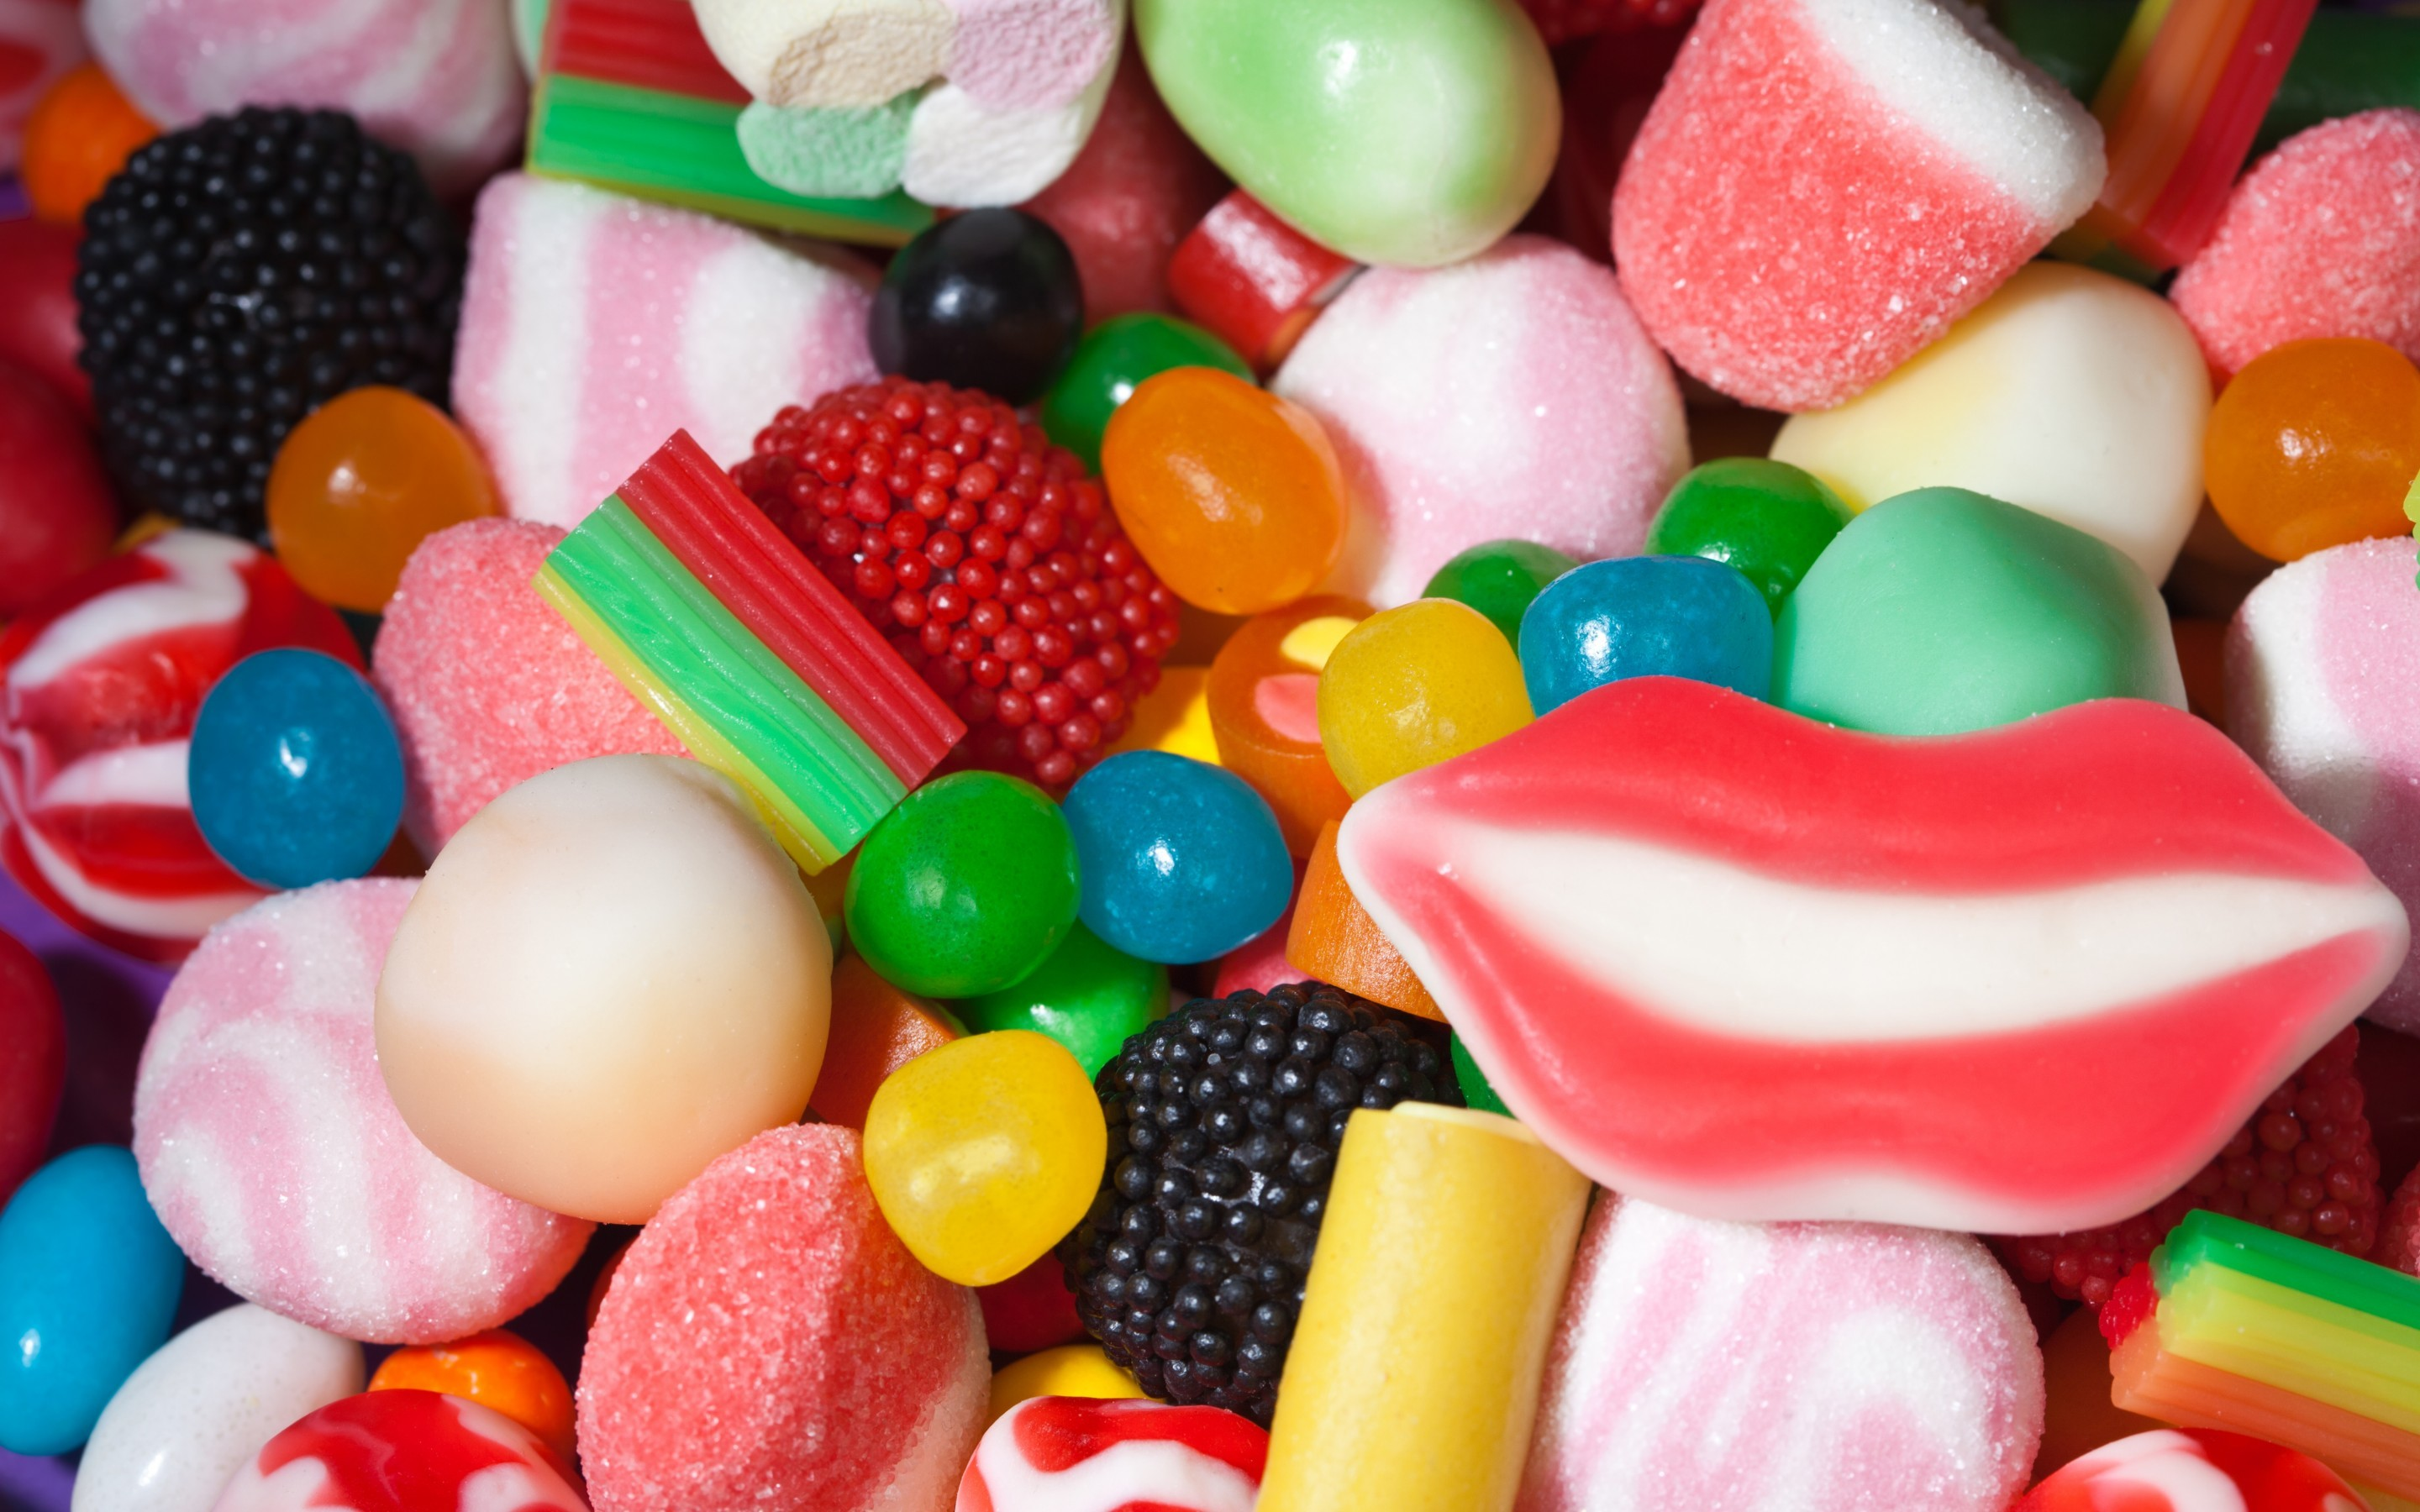 Attachment for 37 Cute Stuff Wallpapers – Marshmallow and Colorful Candy